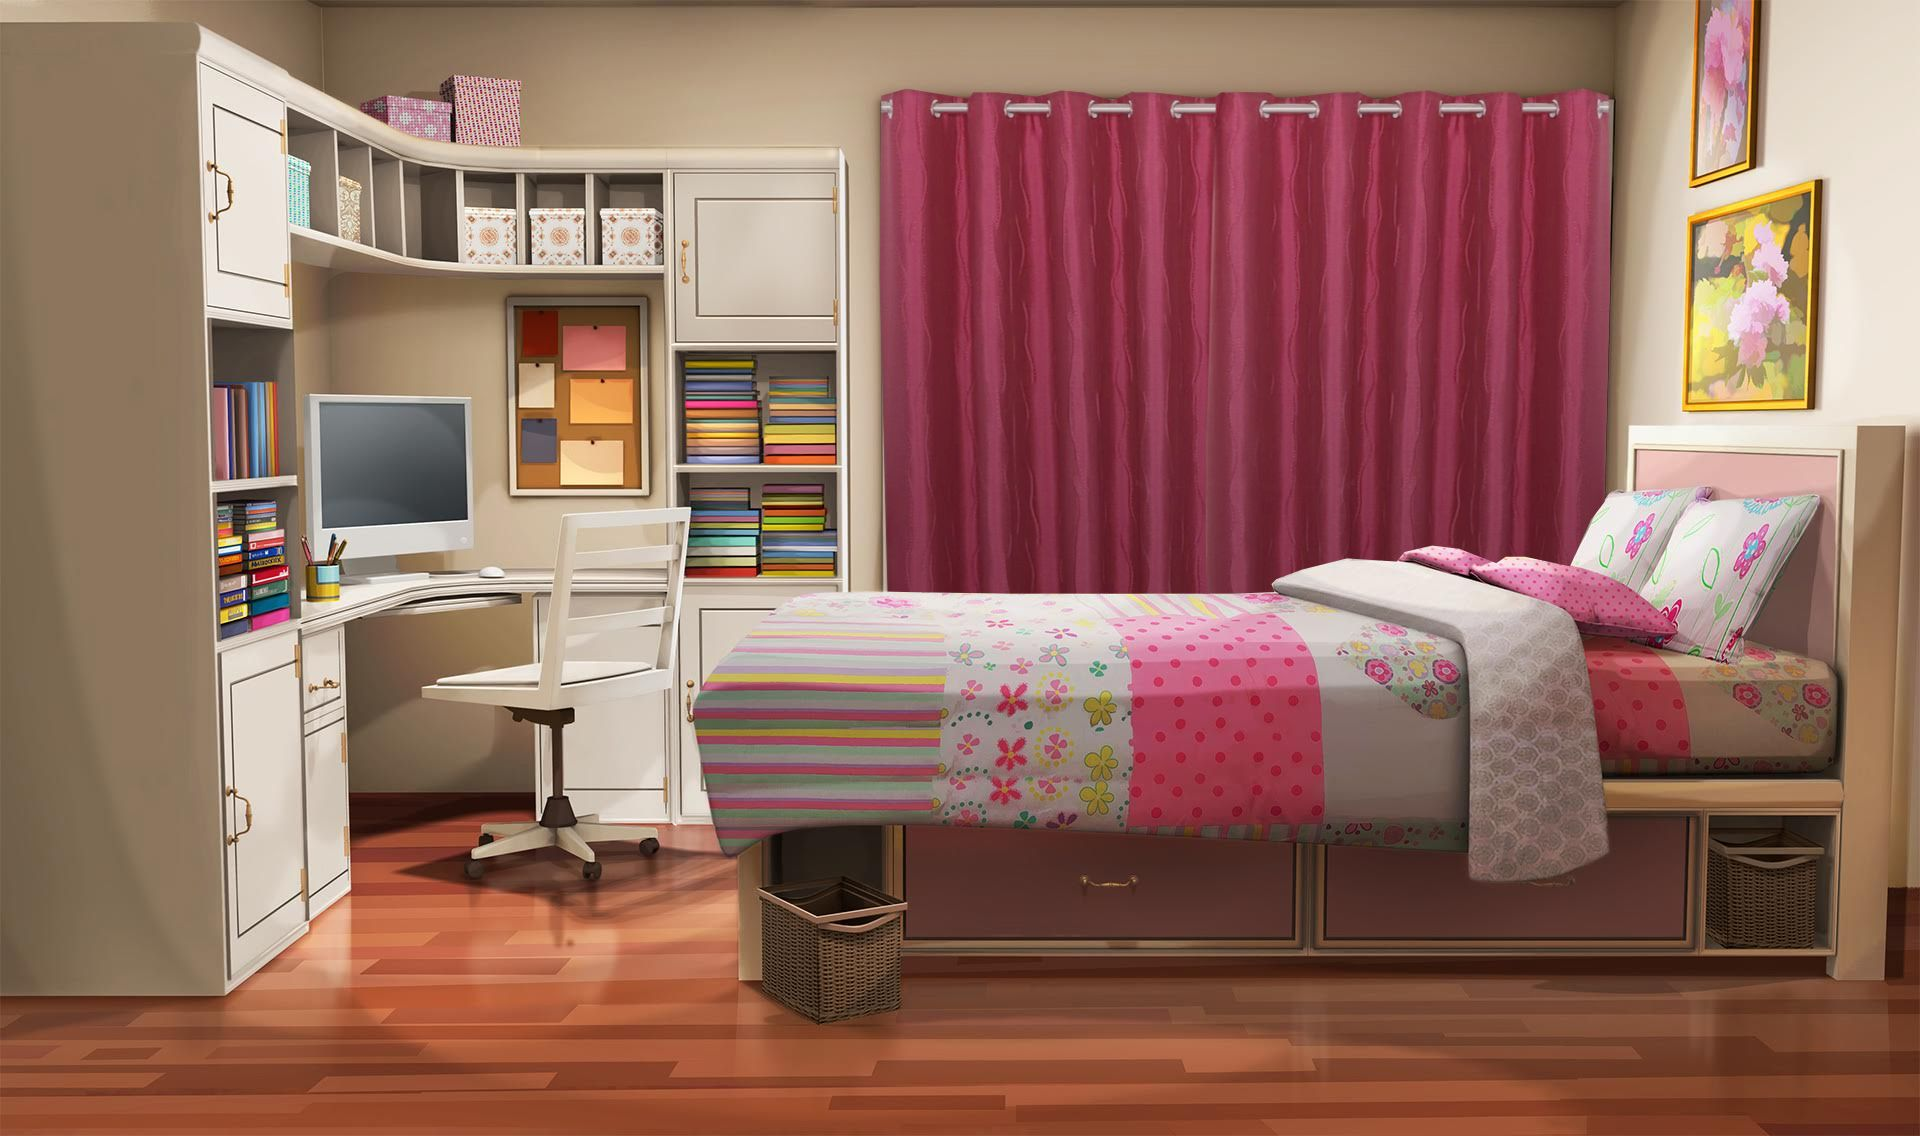 To Download This Background Right Click On The Image Pc Or Control Click On The Image Mac And Select Living Room Background Sister Bedroom Anime Scenery